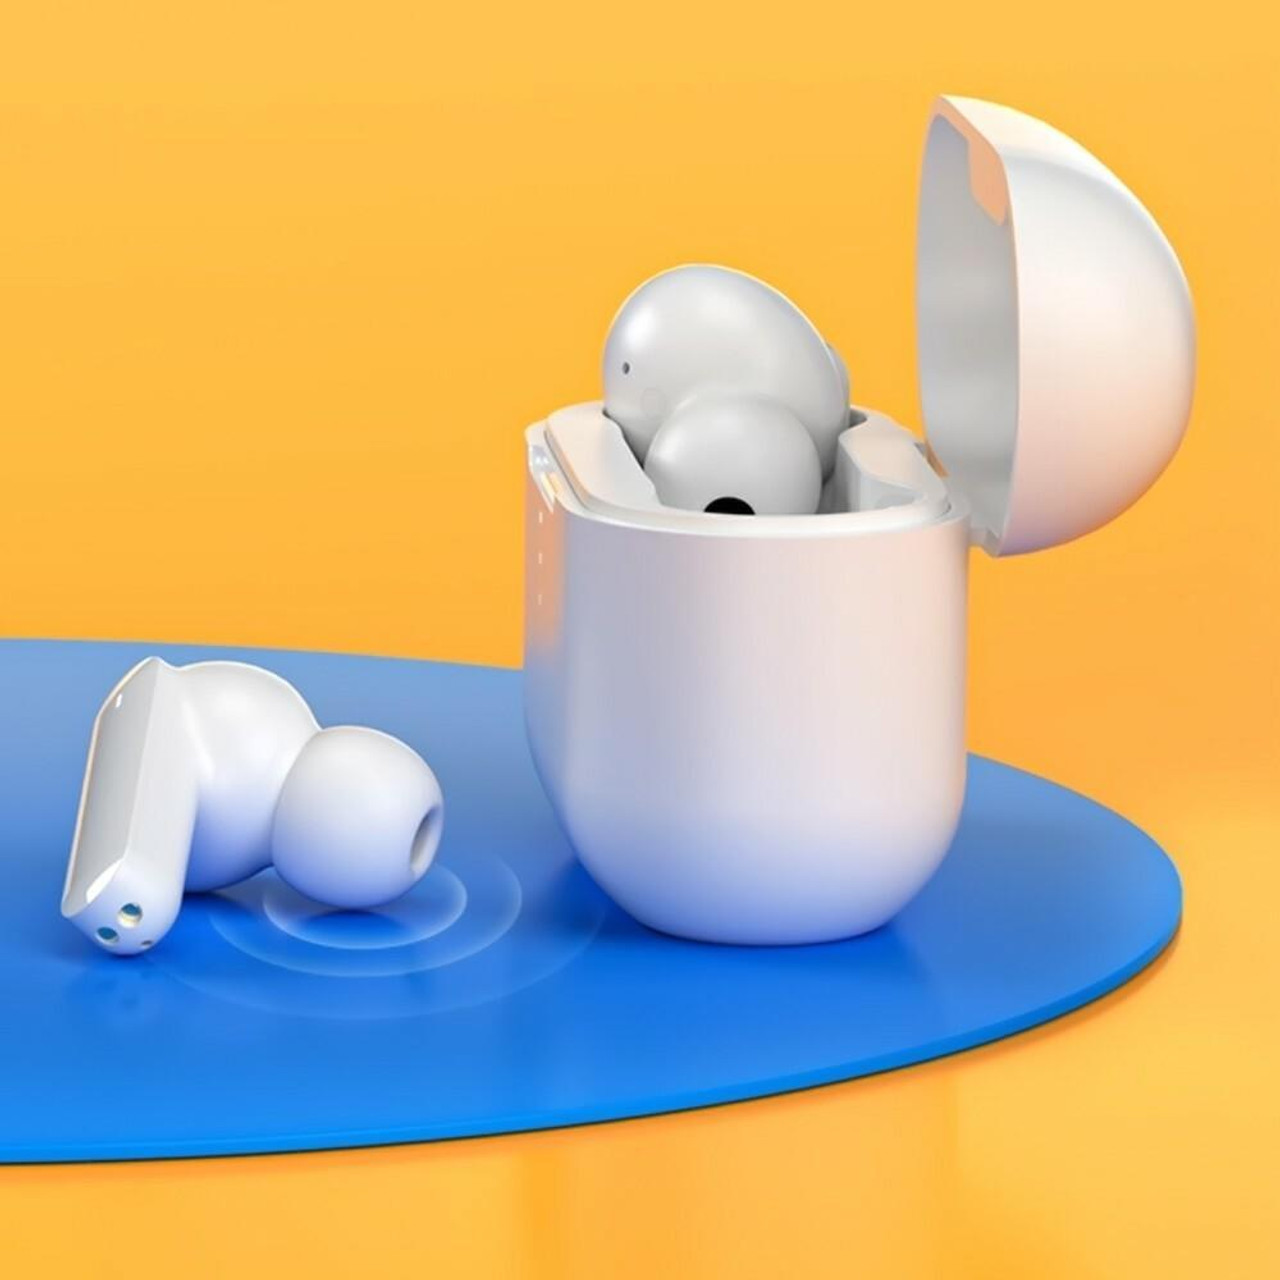 QCY T10 True Wireless Earbuds BT Headphones Dual Balanced Armature Drivers 4 Microphones Noise Cancellation